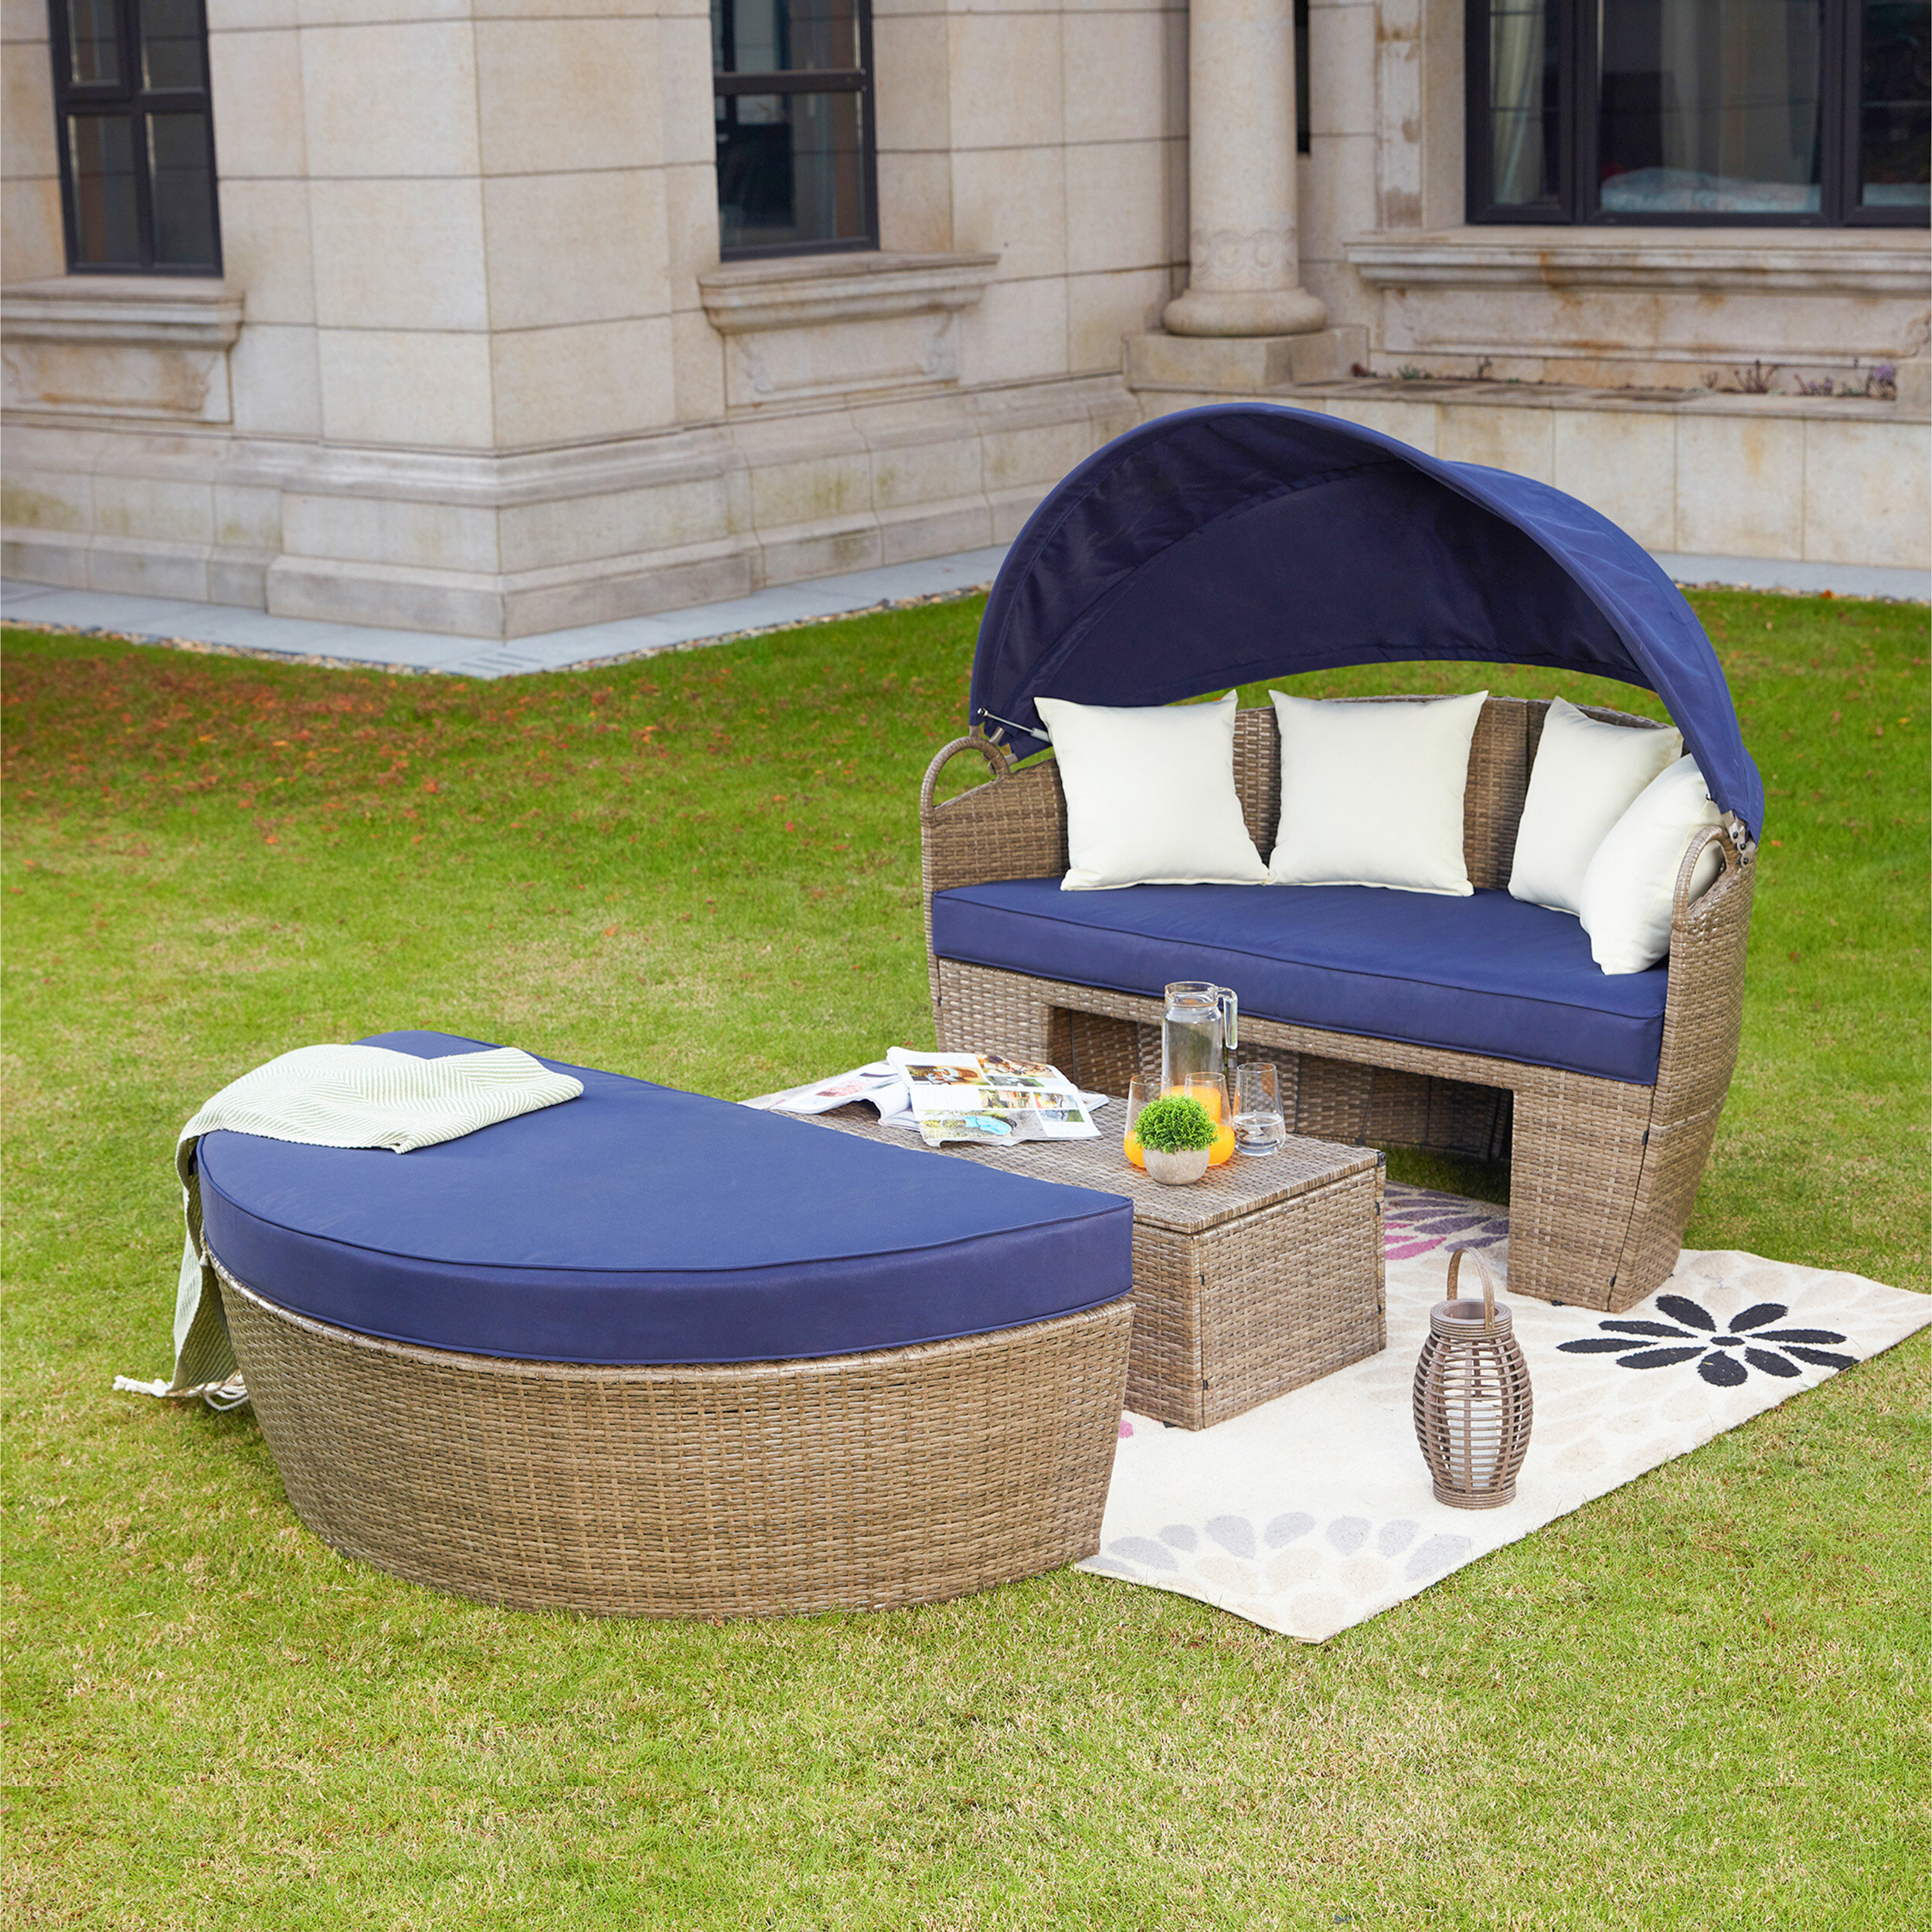 Fansler Patio Daybeds With Cushions Intended For Most Popular Fansler Patio Daybed With Cushions (View 10 of 20)